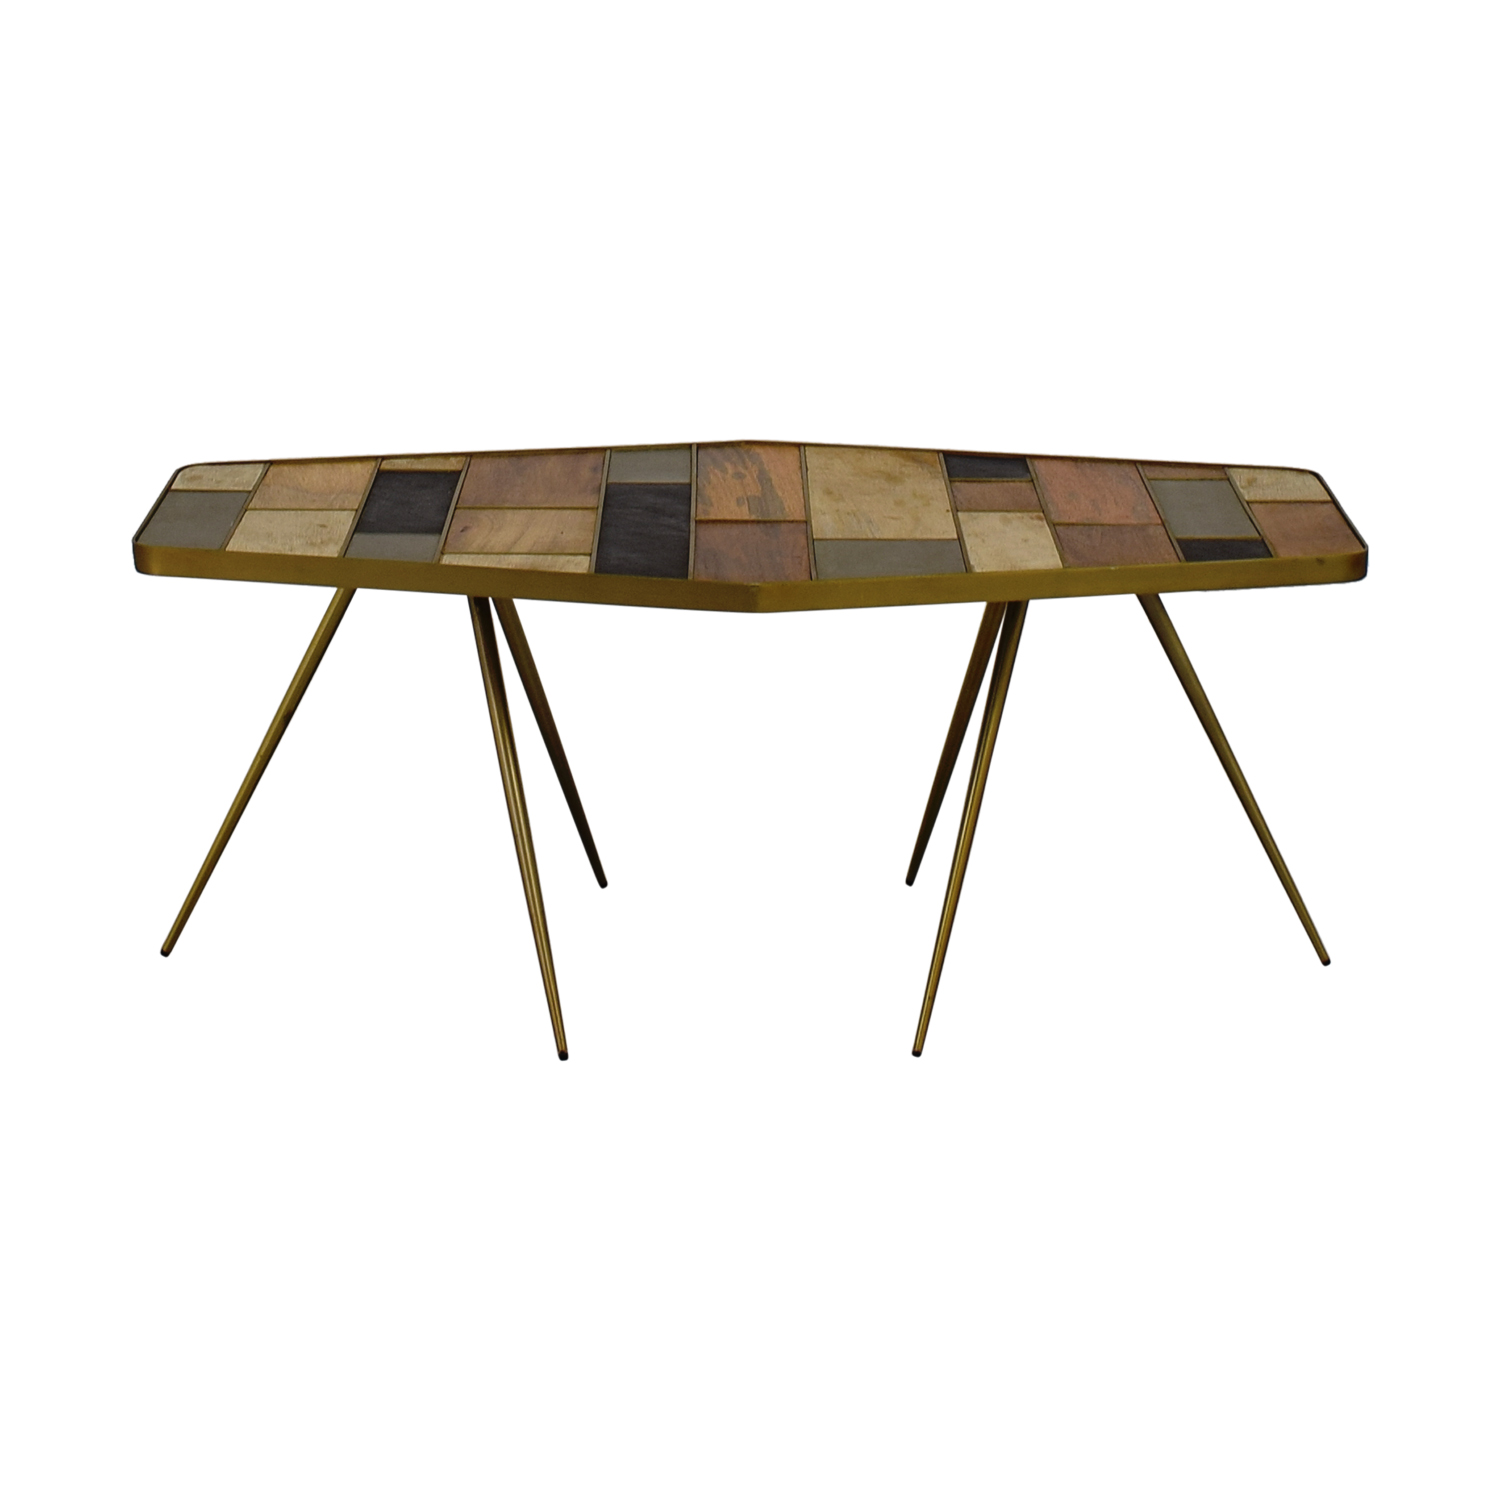 West Elm Roar and Rabbit Coffee Table / Tables